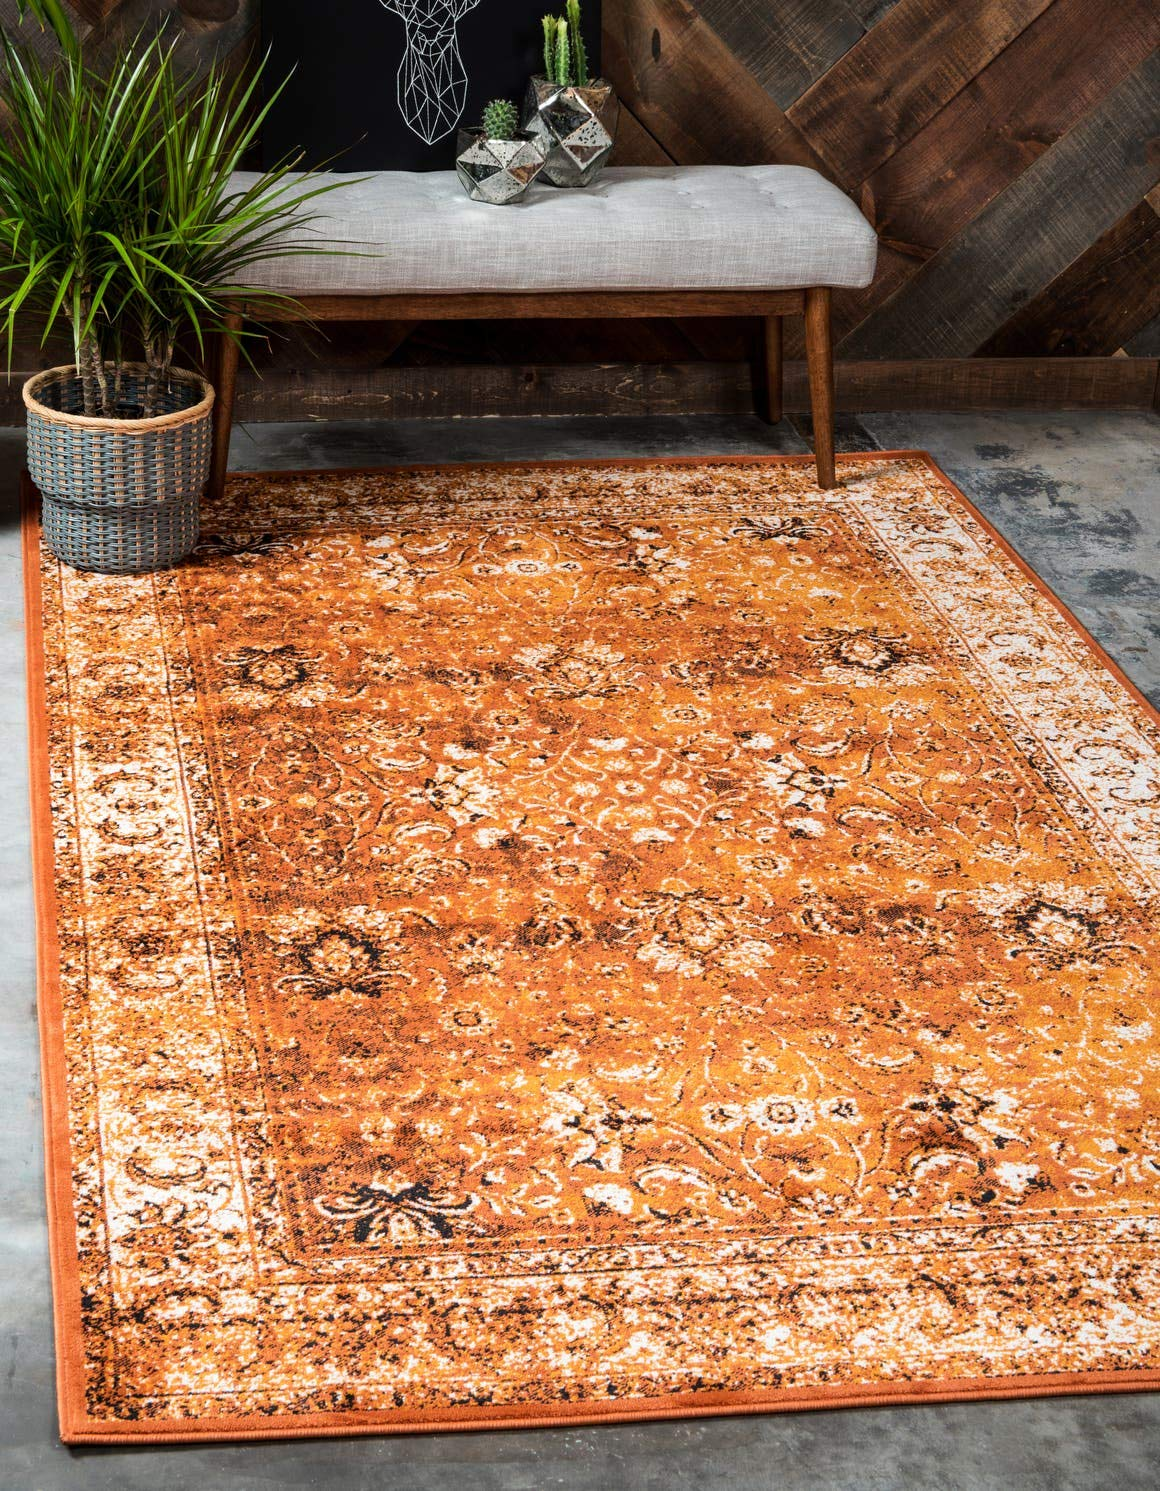 Unique Loom Imperial Collection Modern Traditional Vintage Distressed Terracotta Area Rug 4 0 x 6 0